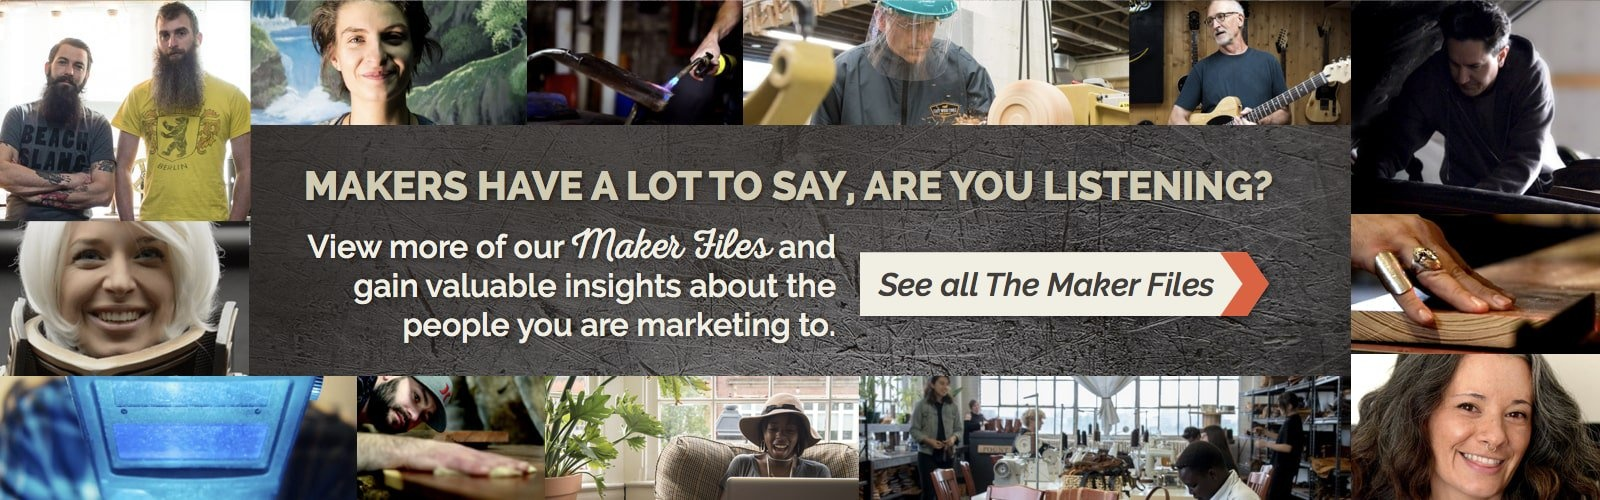 Makers have a lot to say - are you listening